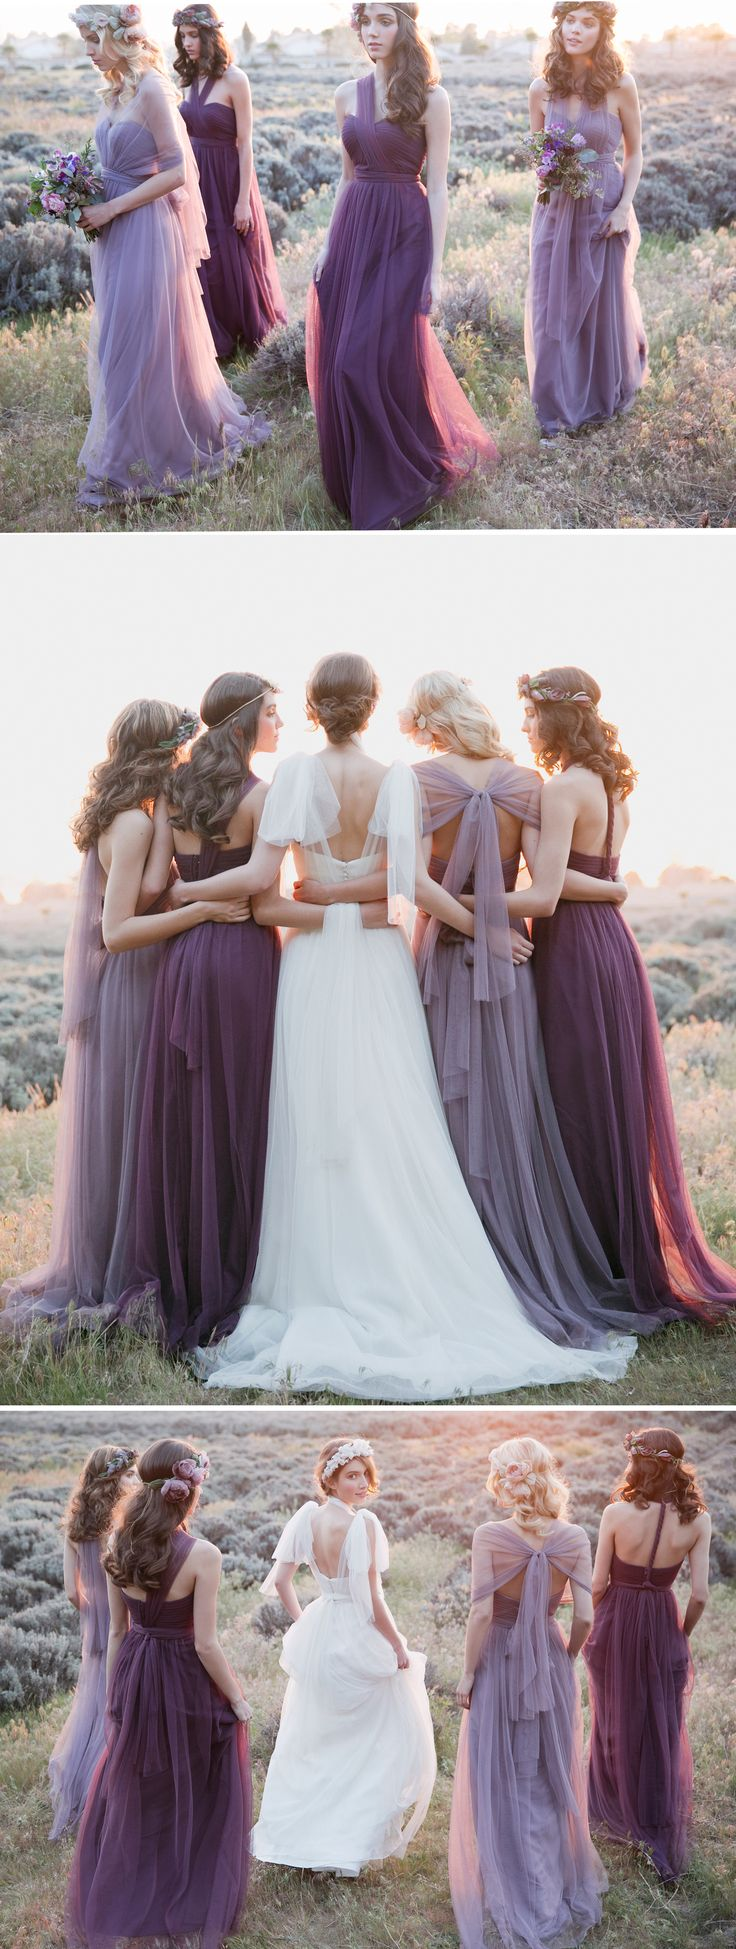 Convertible Collection By Jenny Yoo Annabelle Dress In Lilac And Raisin Tulle Hathaway Bridal Gown